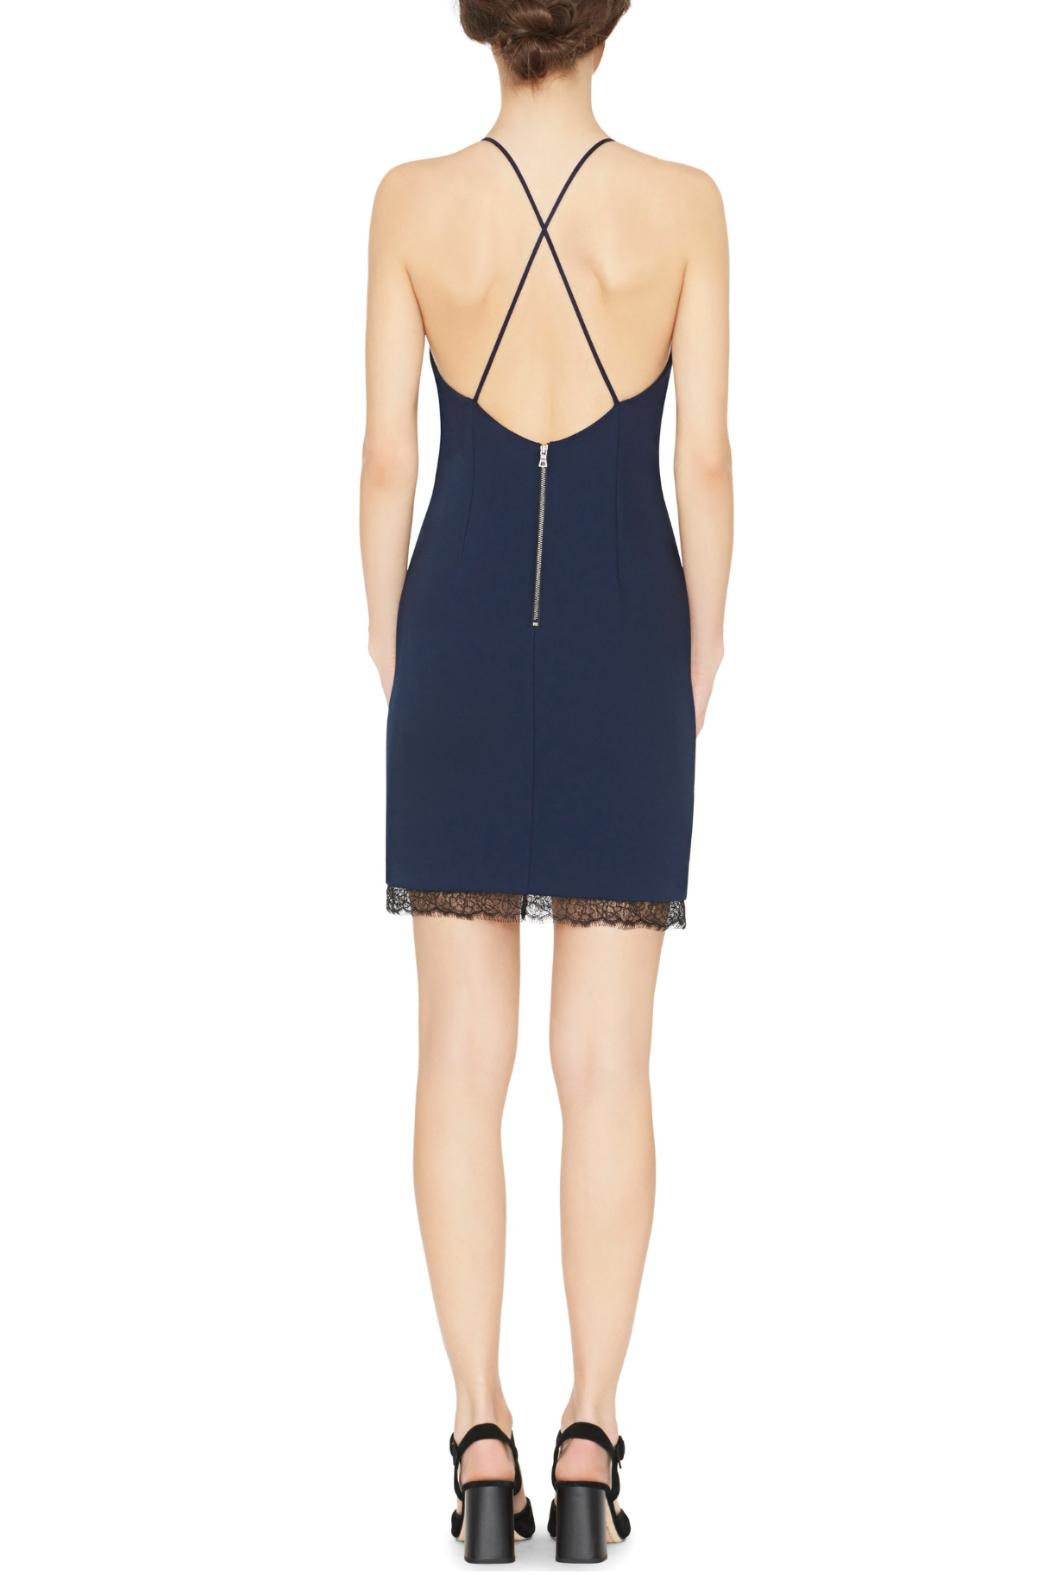 Alice + Olivia Navy Sleeveless Sheath Dress - Front Full Image